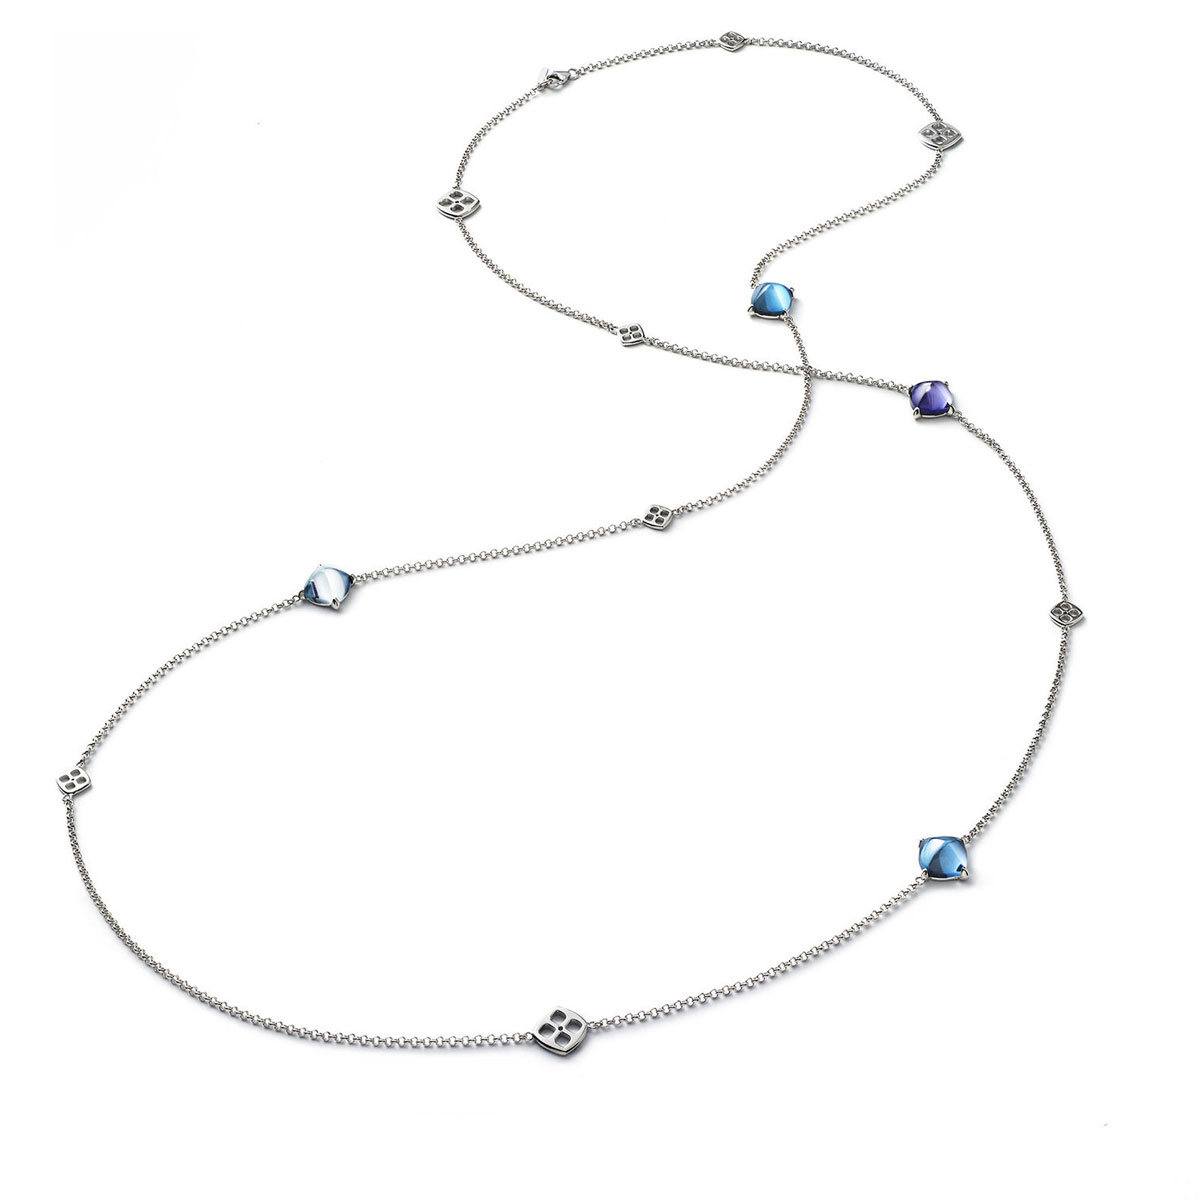 Baccarat Crystal Medicis Mini Long Necklace Sterling Silver Blue Riviera, Aqua and Purple